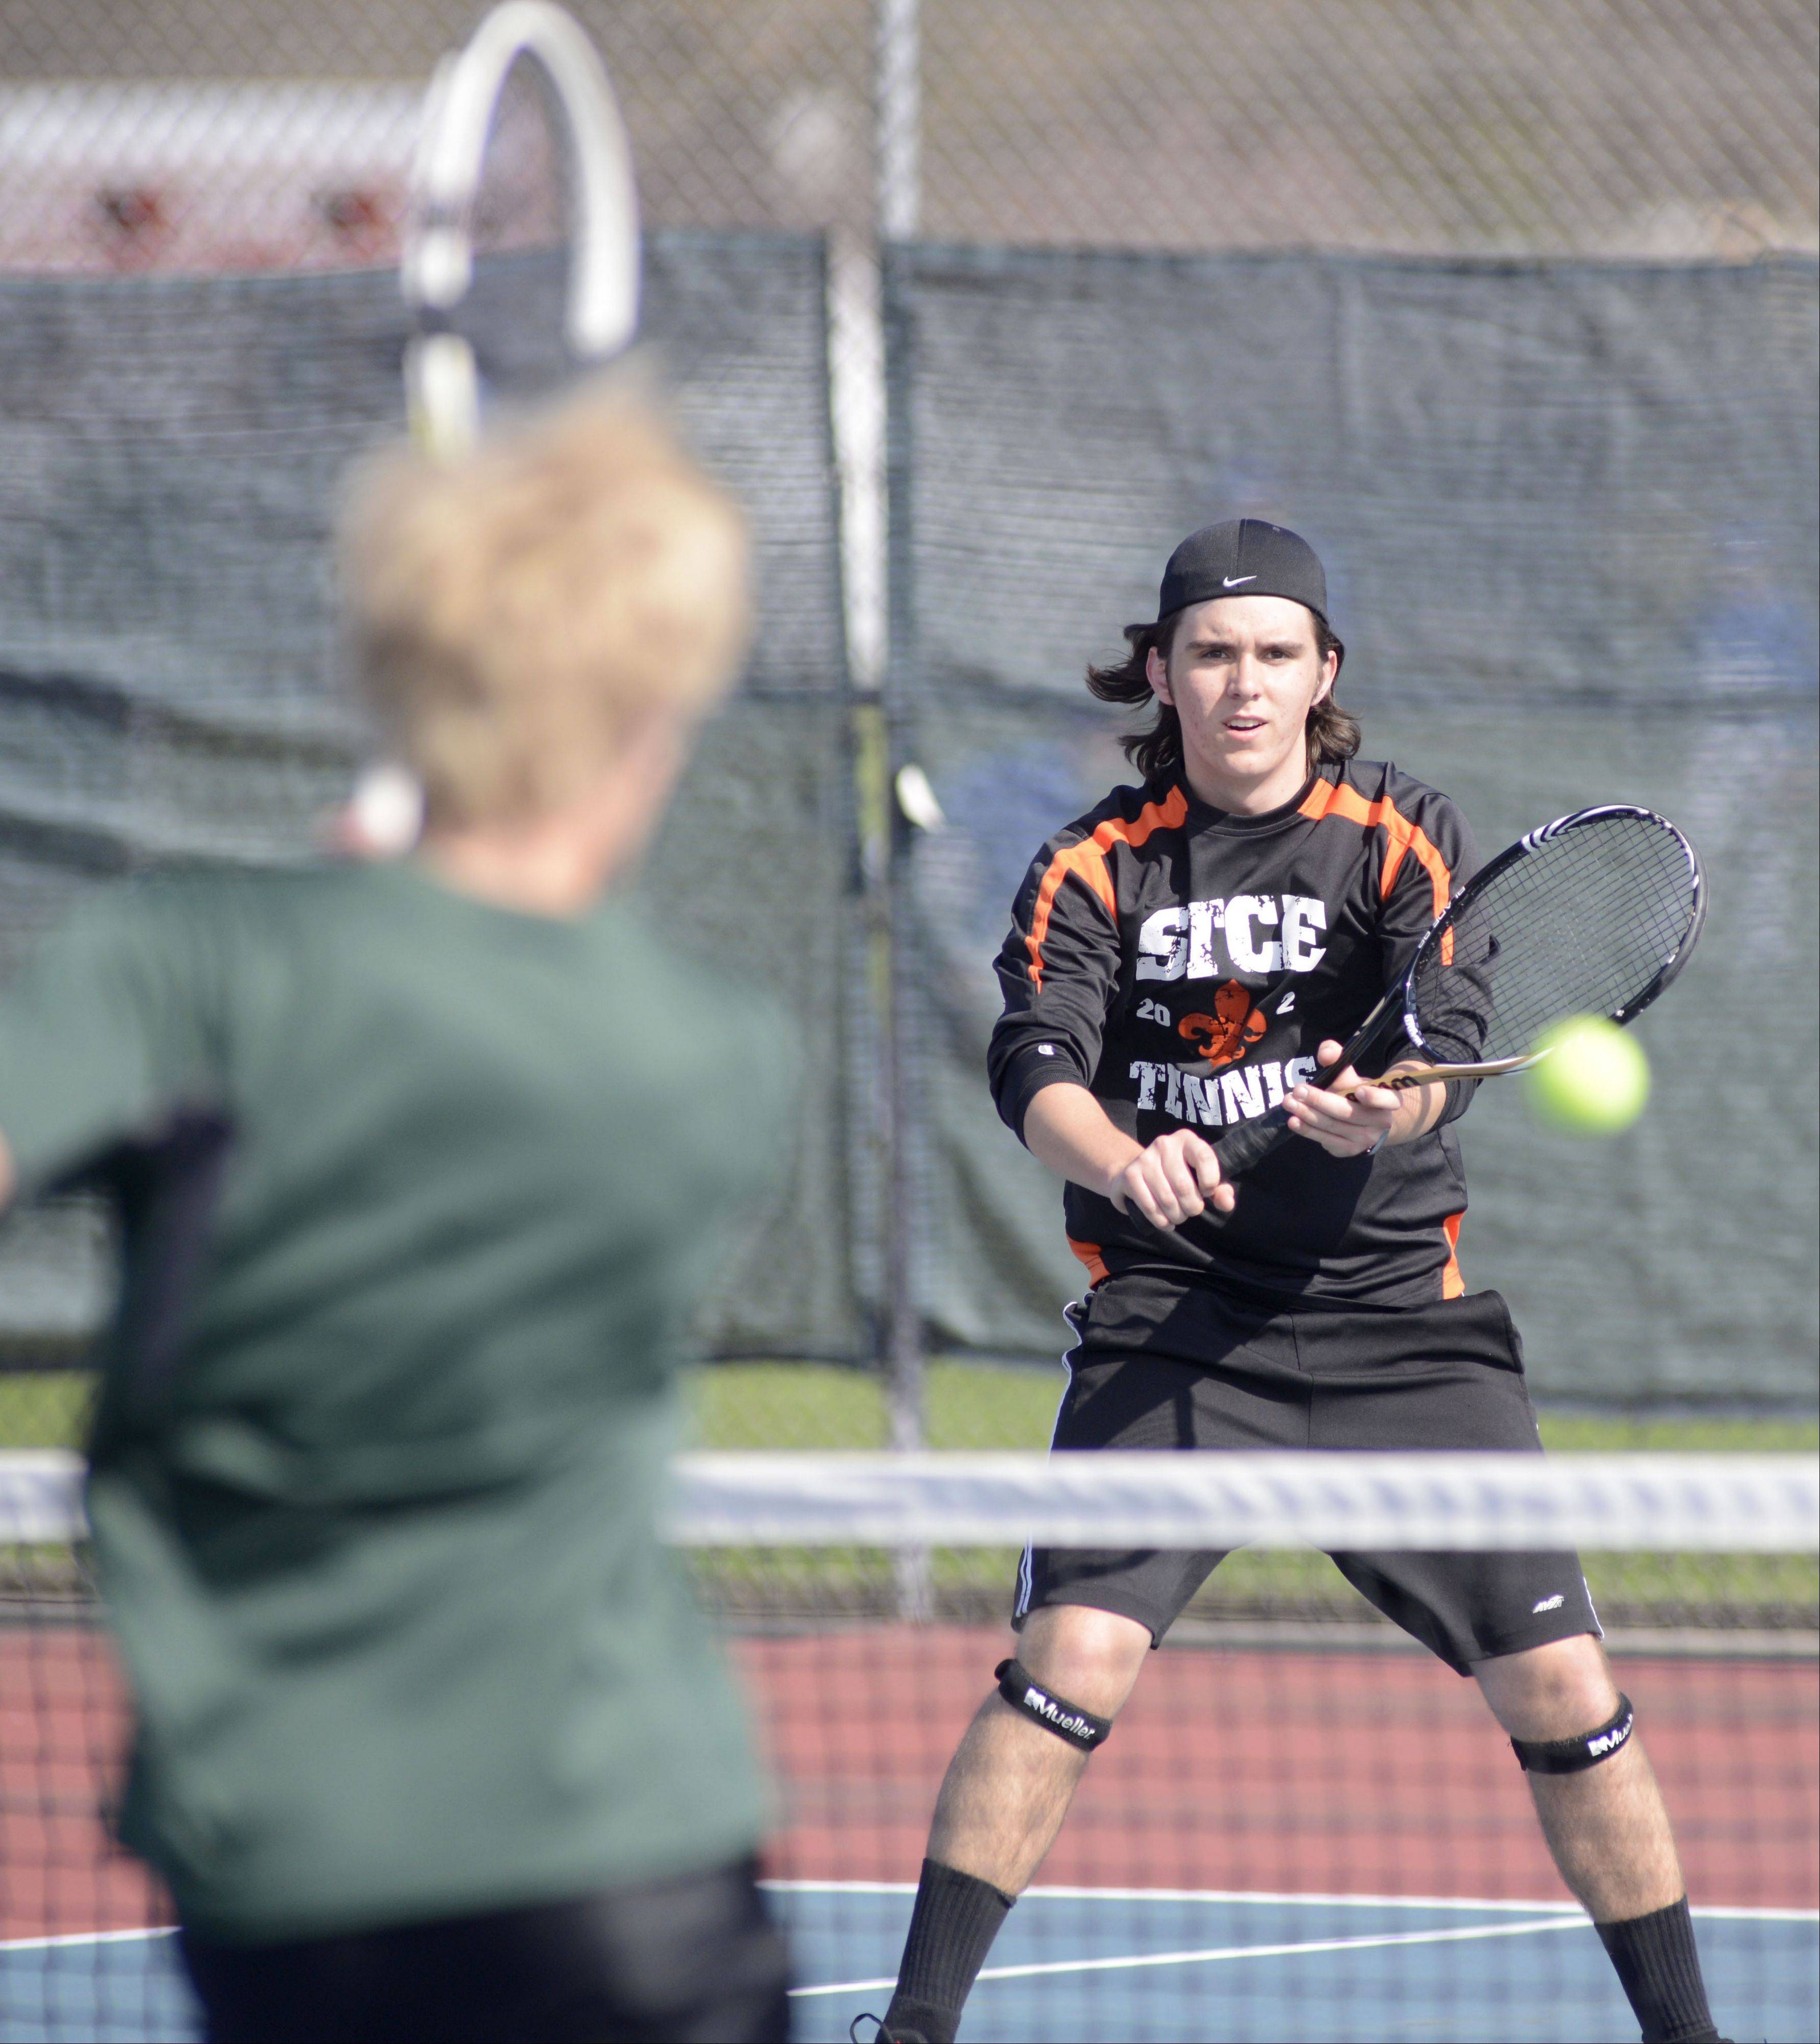 St. Charles East's George Spoerl times his return of the ball from Glenbard West's Kenny Reick in the first doubles match at West Aurora High School on Saturday, April 27.